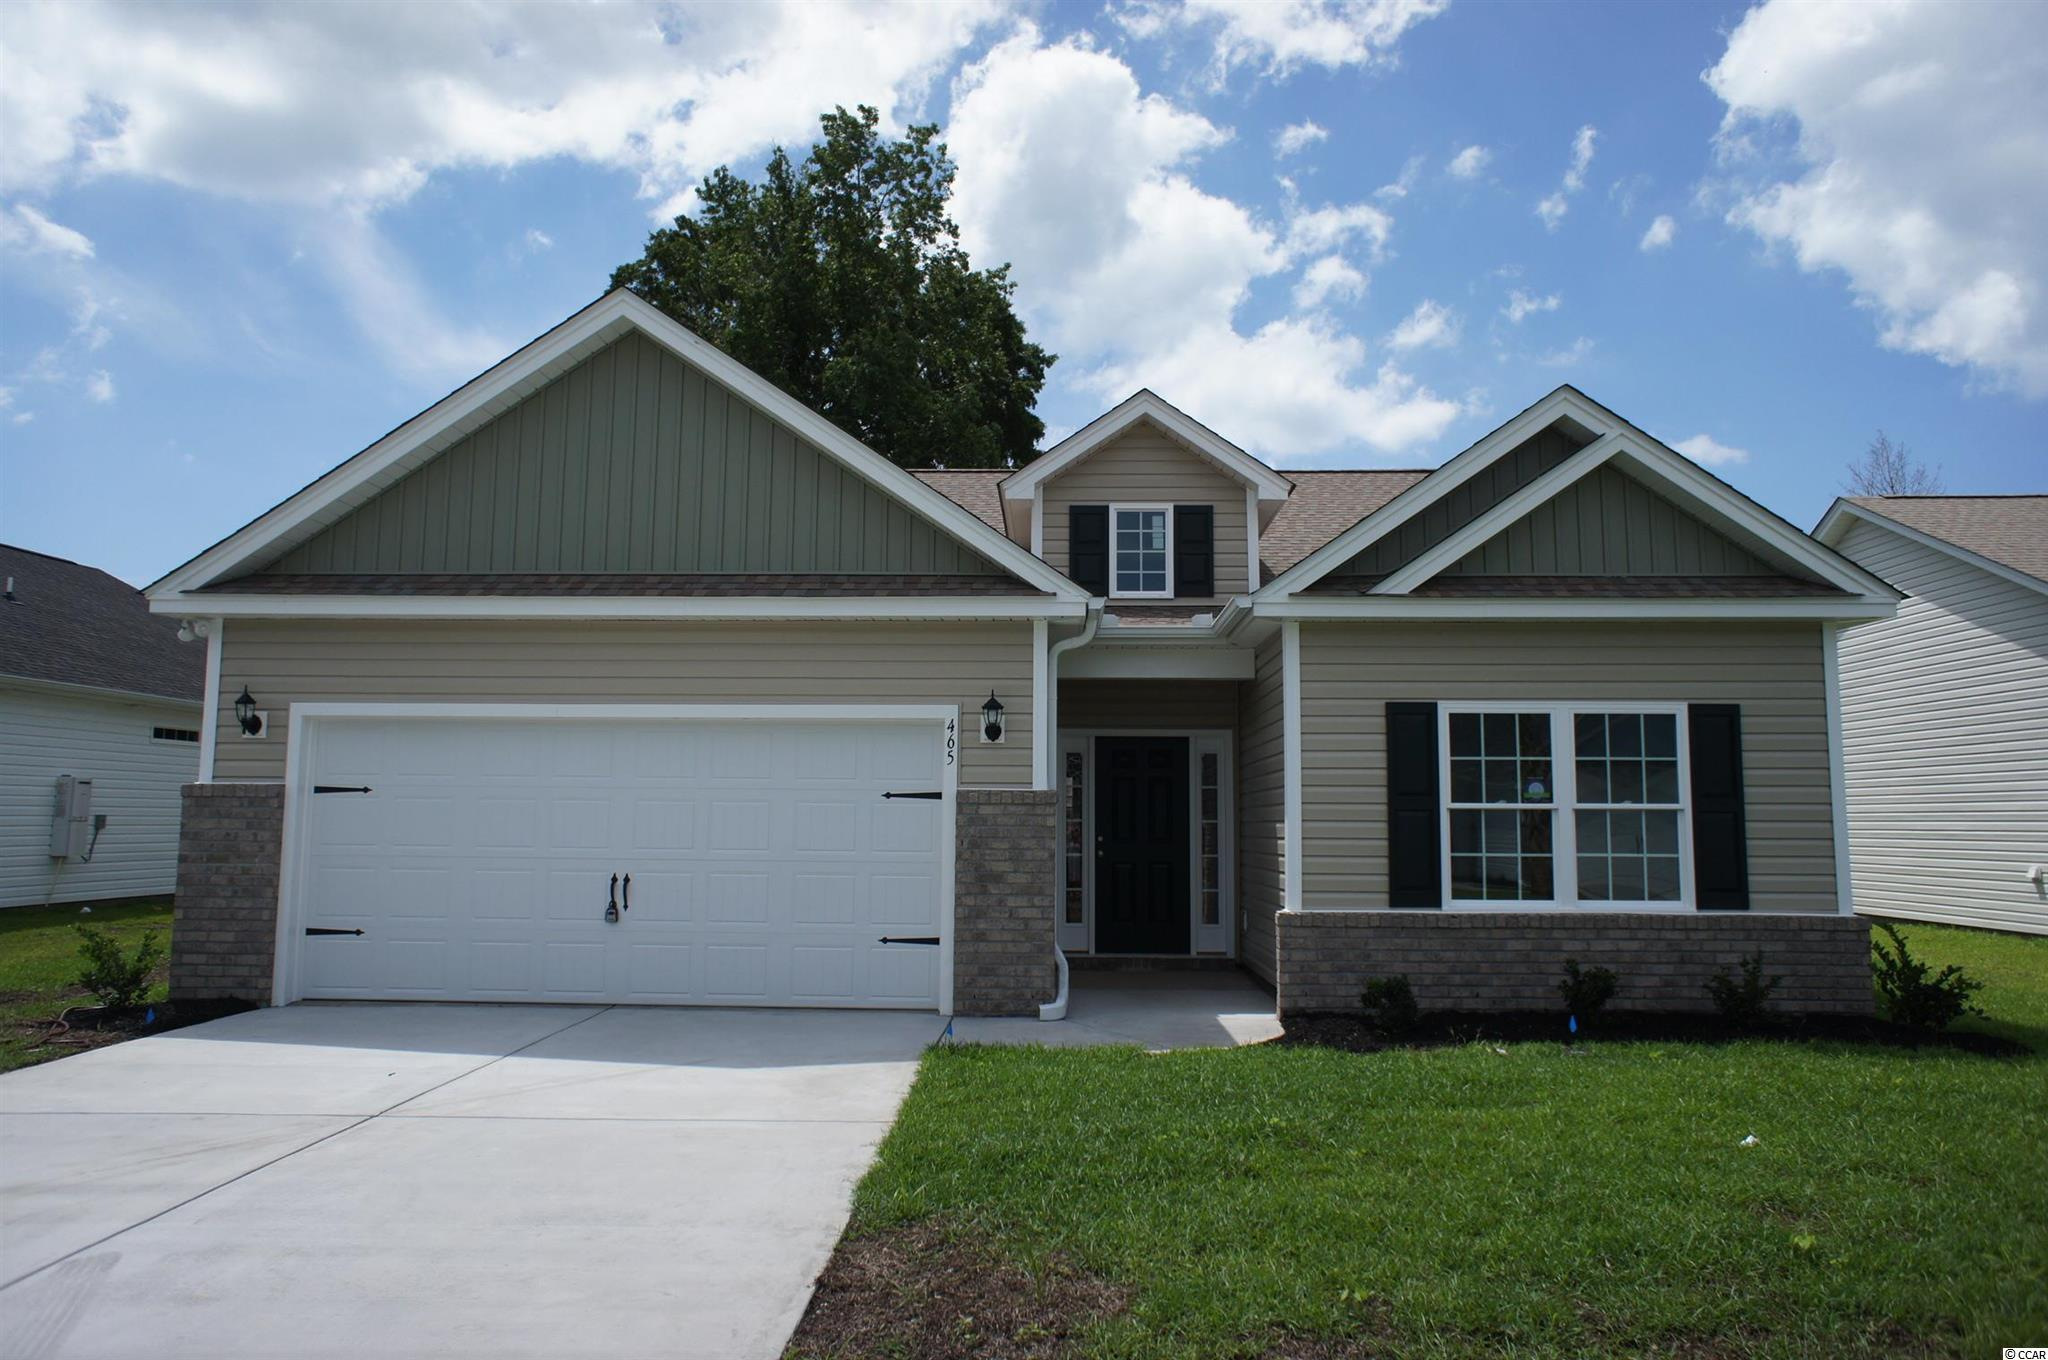 Beautiful Hatteras floor plan in the new Ocean Palms community. This terrific open floor plan, 3 bedroom, 2 full bath home will come with upgraded waterproof LVP flooring under an upgraded live dormer entryway and soaring vaulted ceiling in the family room, kitchen and dining area, and comfortable carpet in the bedrooms. Stainless appliances, staggered-height white painted birch cabinetry and a convenient granite breakfast bar combine to give you the wow factor you're looking for, and abundant recessed lighting plus two large windows in the adjacent dining area flood the room with light. A French door in the great room leads to the covered rear porch and the large separate patio beyond. The spacious master retreat features a long grey painted cabinet vanity, an oversized walk-in shower, plenty of storage in the linen closet and a huge walk-in closet, plus a tray ceiling. Two additional bedrooms and a full bath are tucked off on their own hallway, for privacy. All of the homes in Ocean Palms come standard with the luxury of natural gas (tankless water heater, gas heat, and gas range). The two car garage is completely trimmed and painted, and a floored attic storage space is accessed by drop-down stairs. Ocean Palms is conveniently located near shopping, restaurants, schools and world class medical offices and hospitals, and only a short golf cart ride to Surfside Beach's gorgeous beach and the beautiful Atlantic Ocean. Other floor plans and inventory homes may be available, and CUSTOMIZATION OF FLOOR PLANS IS POSSIBLE!!! Community Pool and Cabana are now open! Photos are of a completed, similar home and may have different features.